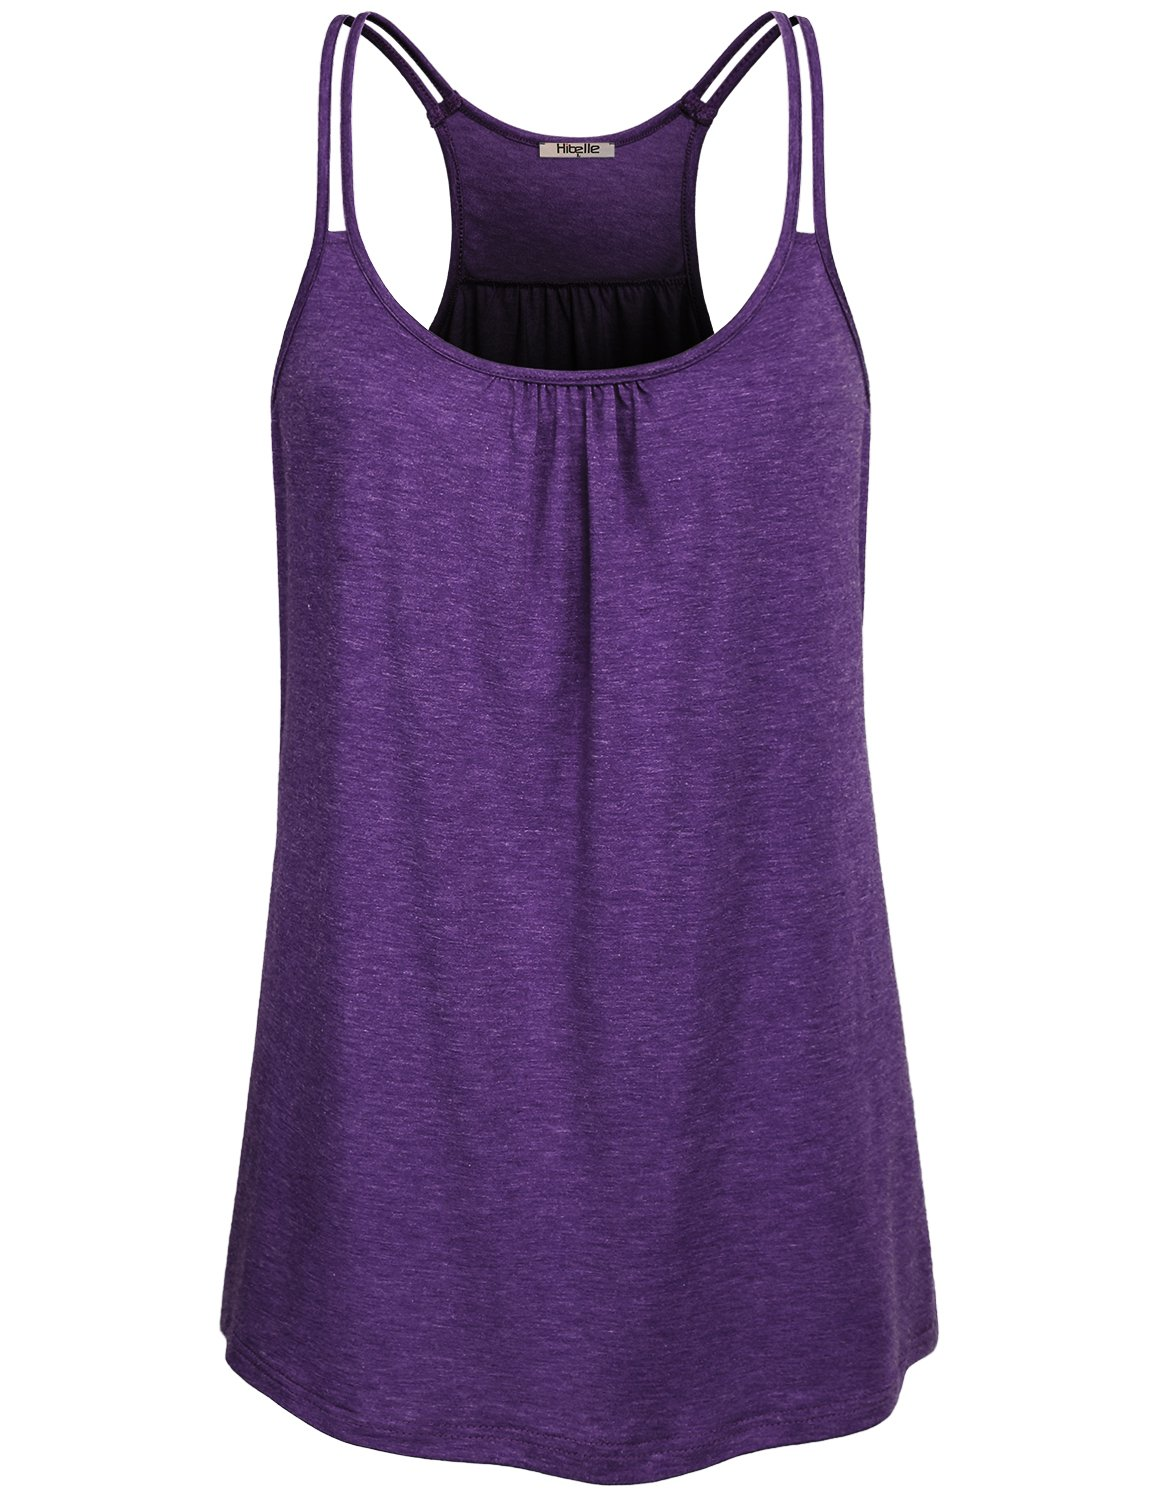 bec57be6875a7 Best Rated in Women s Sports Tank Tops   Helpful Customer Reviews ...